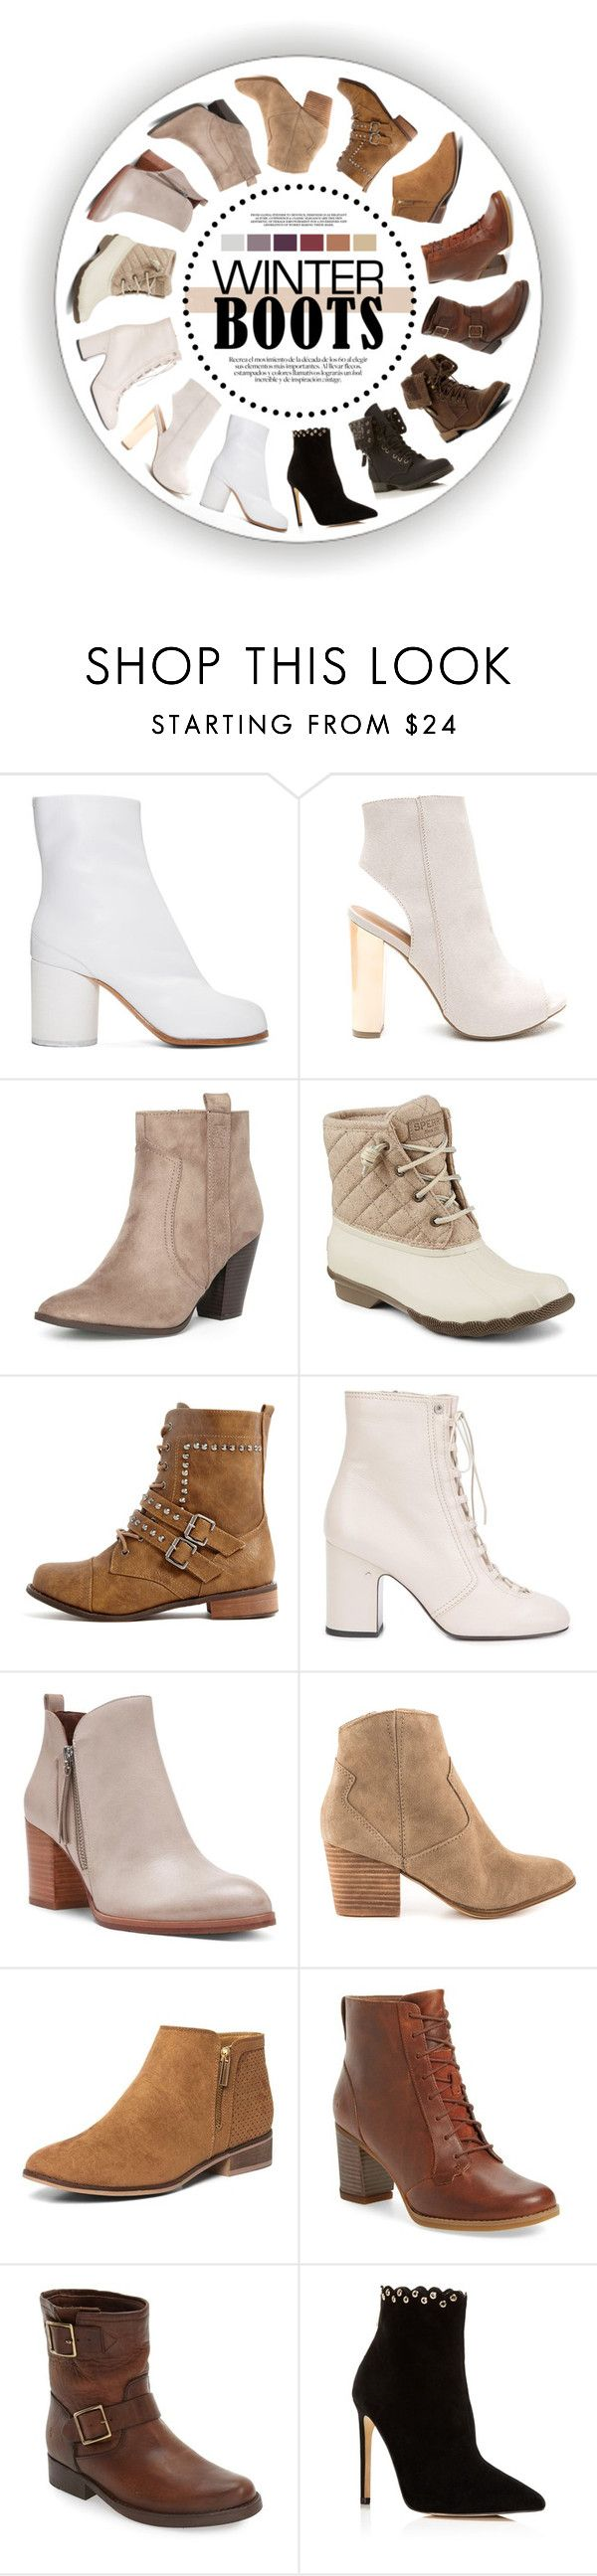 """""""Cozy Winter Boots"""" by singingintherain-788 ❤ liked on Polyvore featuring Maison Margiela, Dorothy Perkins, Sperry, Laurence Dacade, Donald J Pliner, ALDO, Timberland, Frye, Raye and contestentry"""